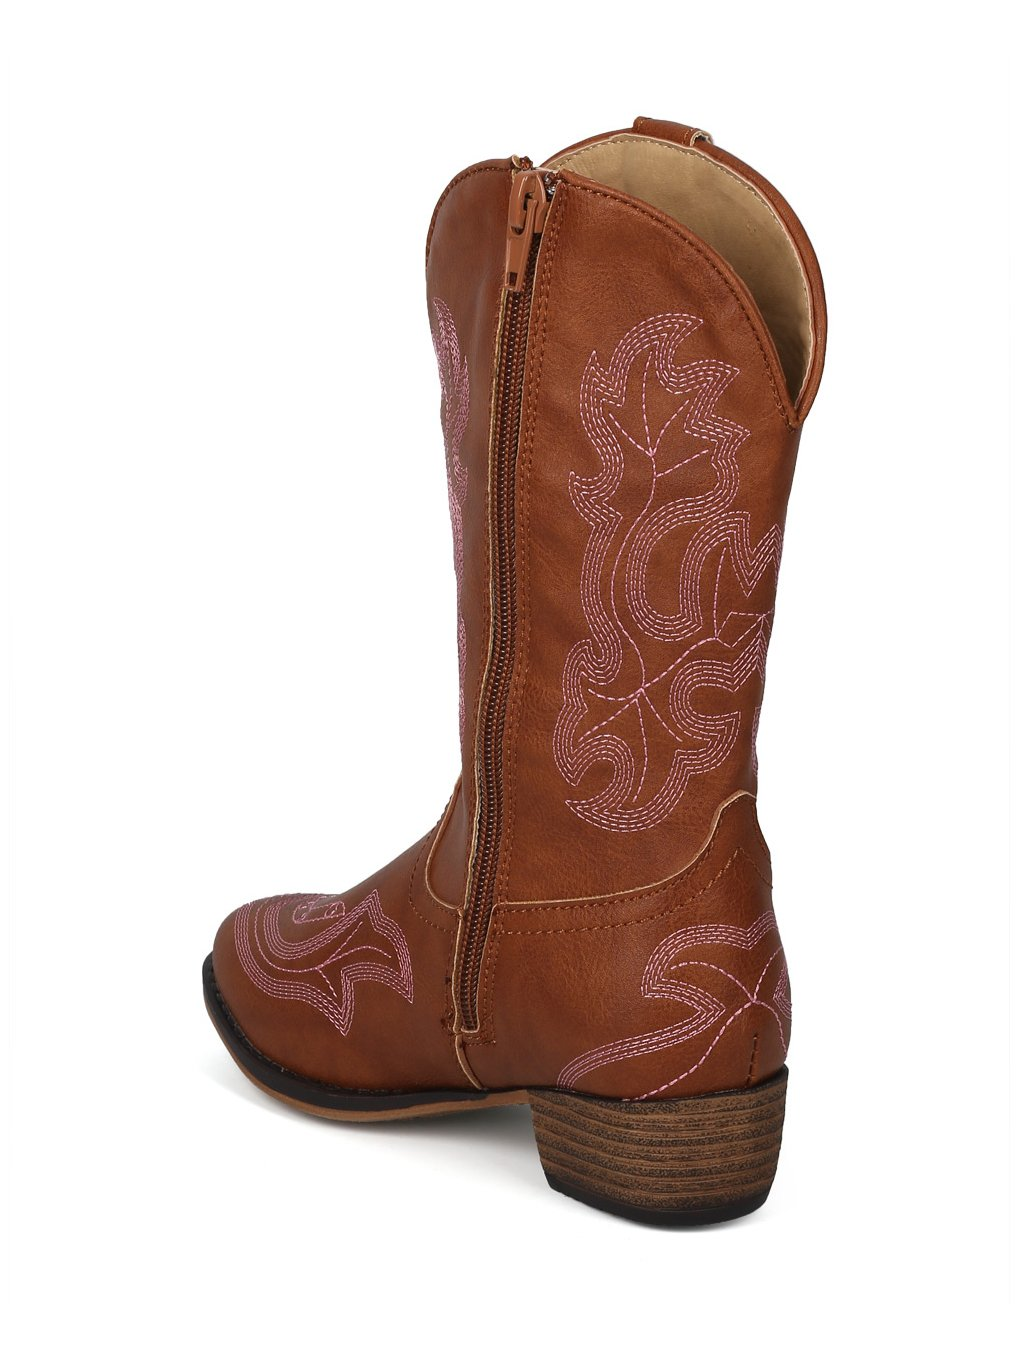 Alrisco Girls Leatherette Embroidered Tall Cowboy Boot HG02 - Tan Leatherette (Size: Little Kid 1) by Alrisco (Image #2)